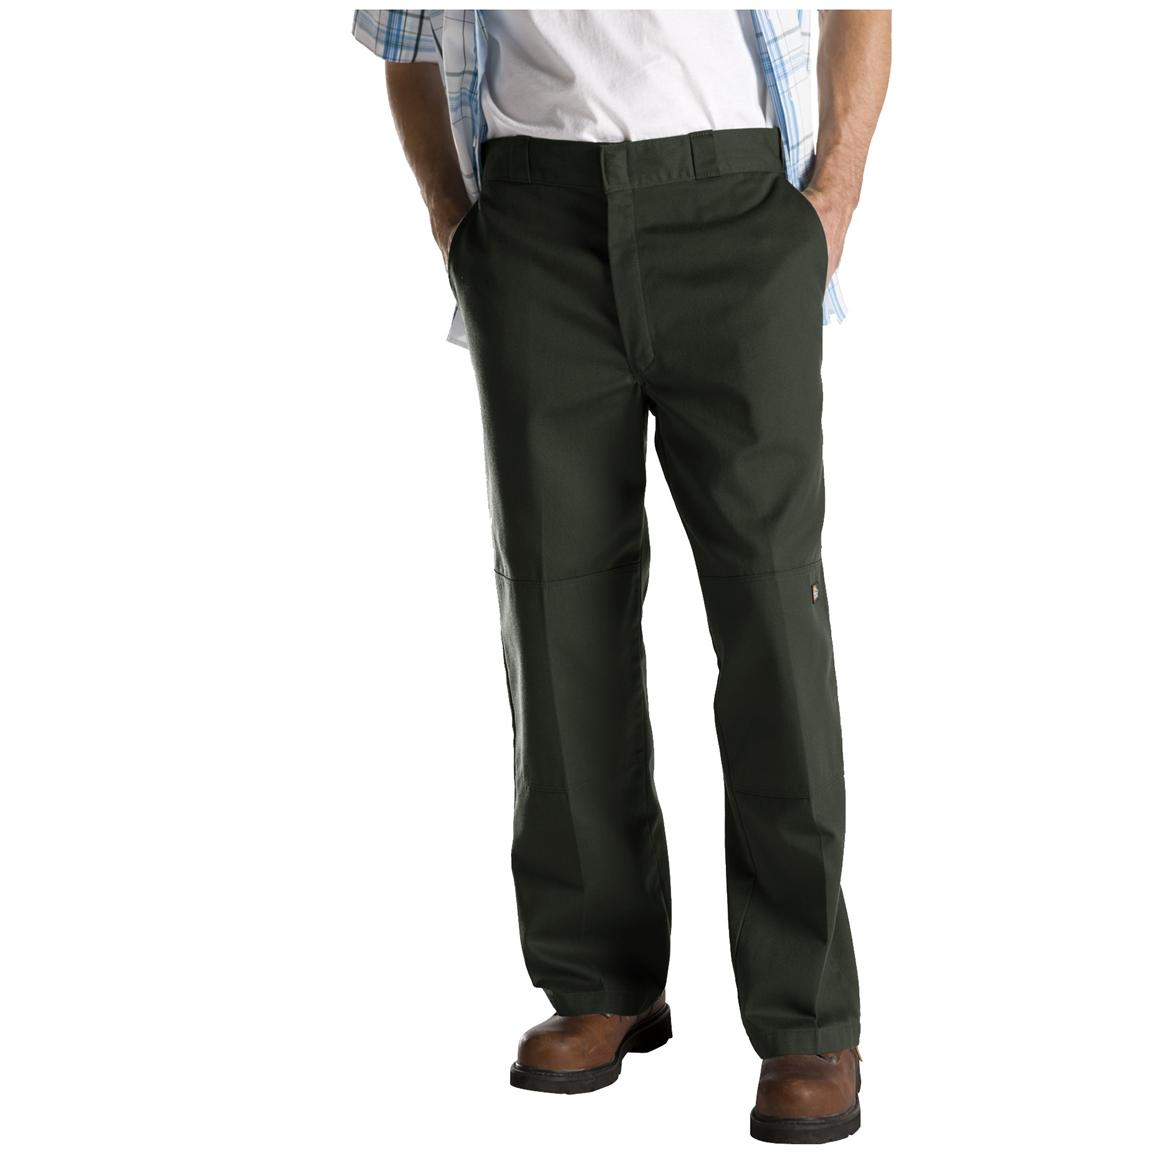 Dickies® Loose Fit Double-Knee Work Pants, Olive Green